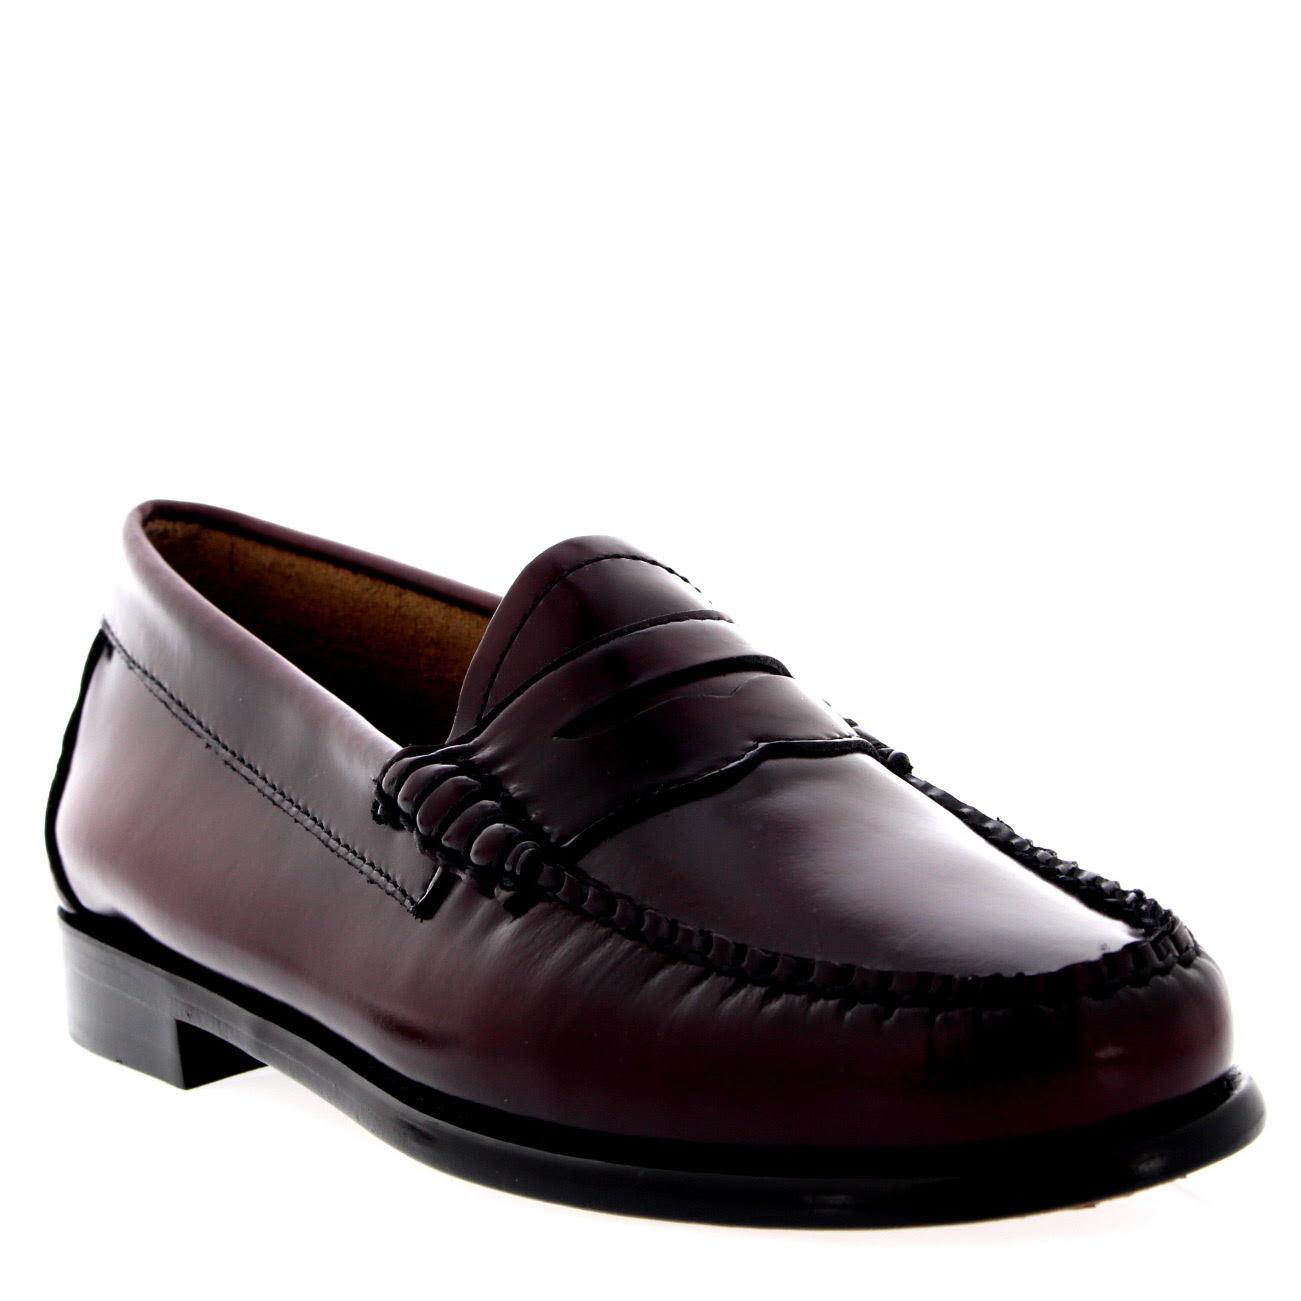 Womens G.H Bass Weejuns Penny Leather Smart Loafers Office ...